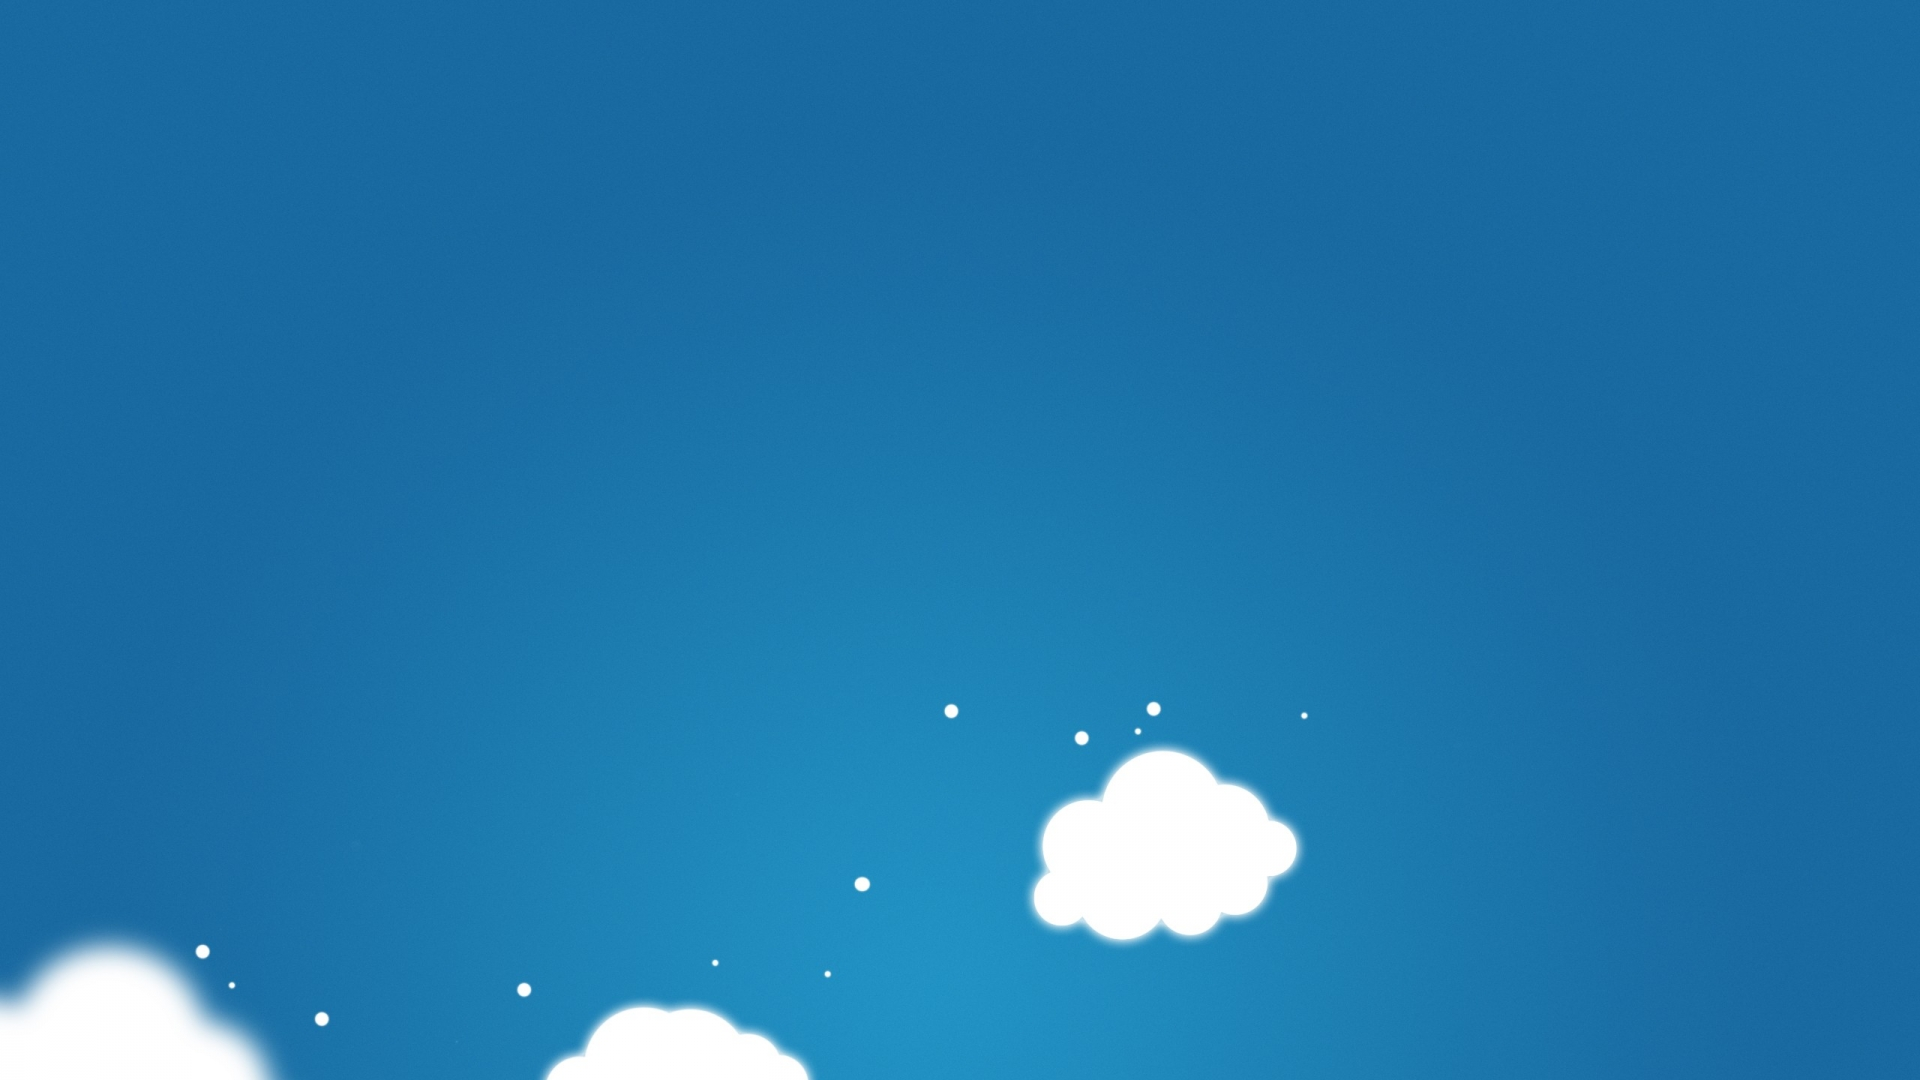 Cartoon Clouds Wallpaper 46932